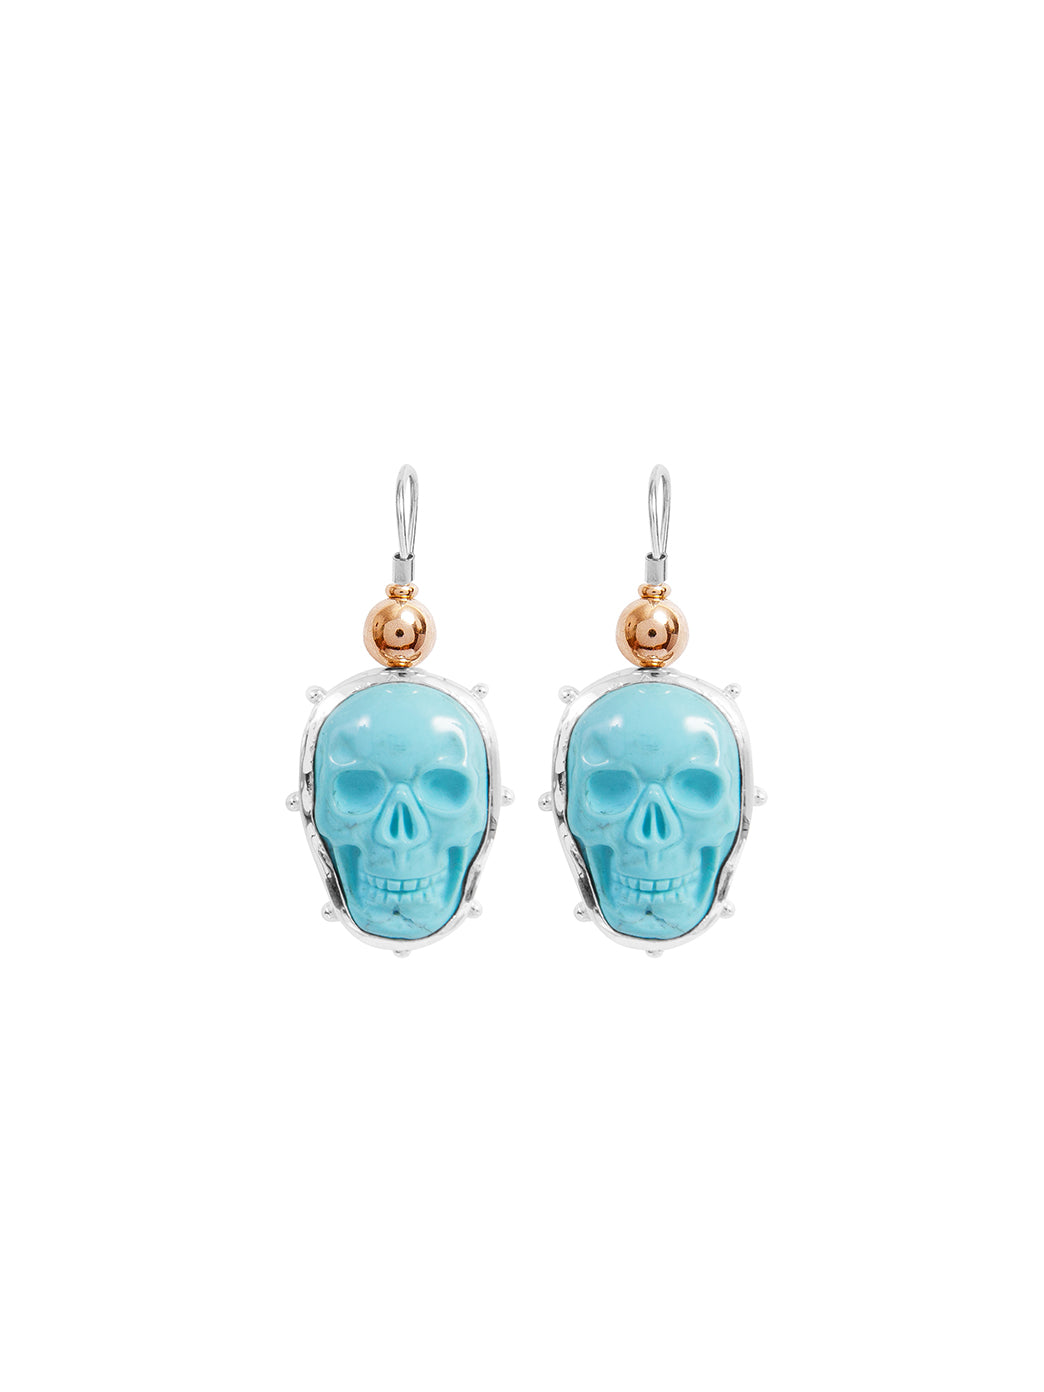 Fiorina Jewellery Turquoise Skill Earrings